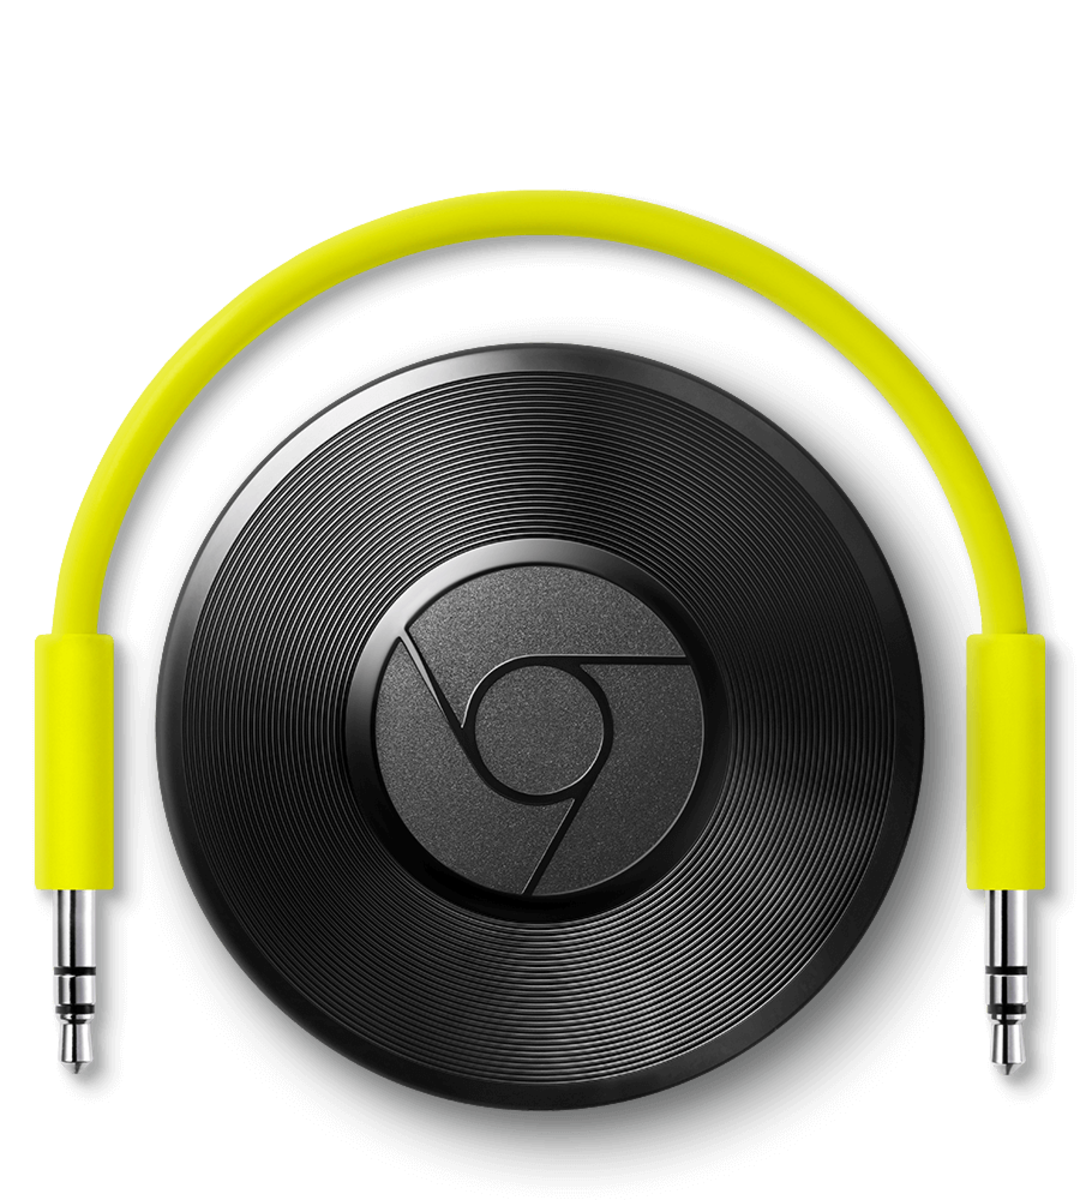 Chromecast Audio / Music Streaming Dongle (Parallel Import)